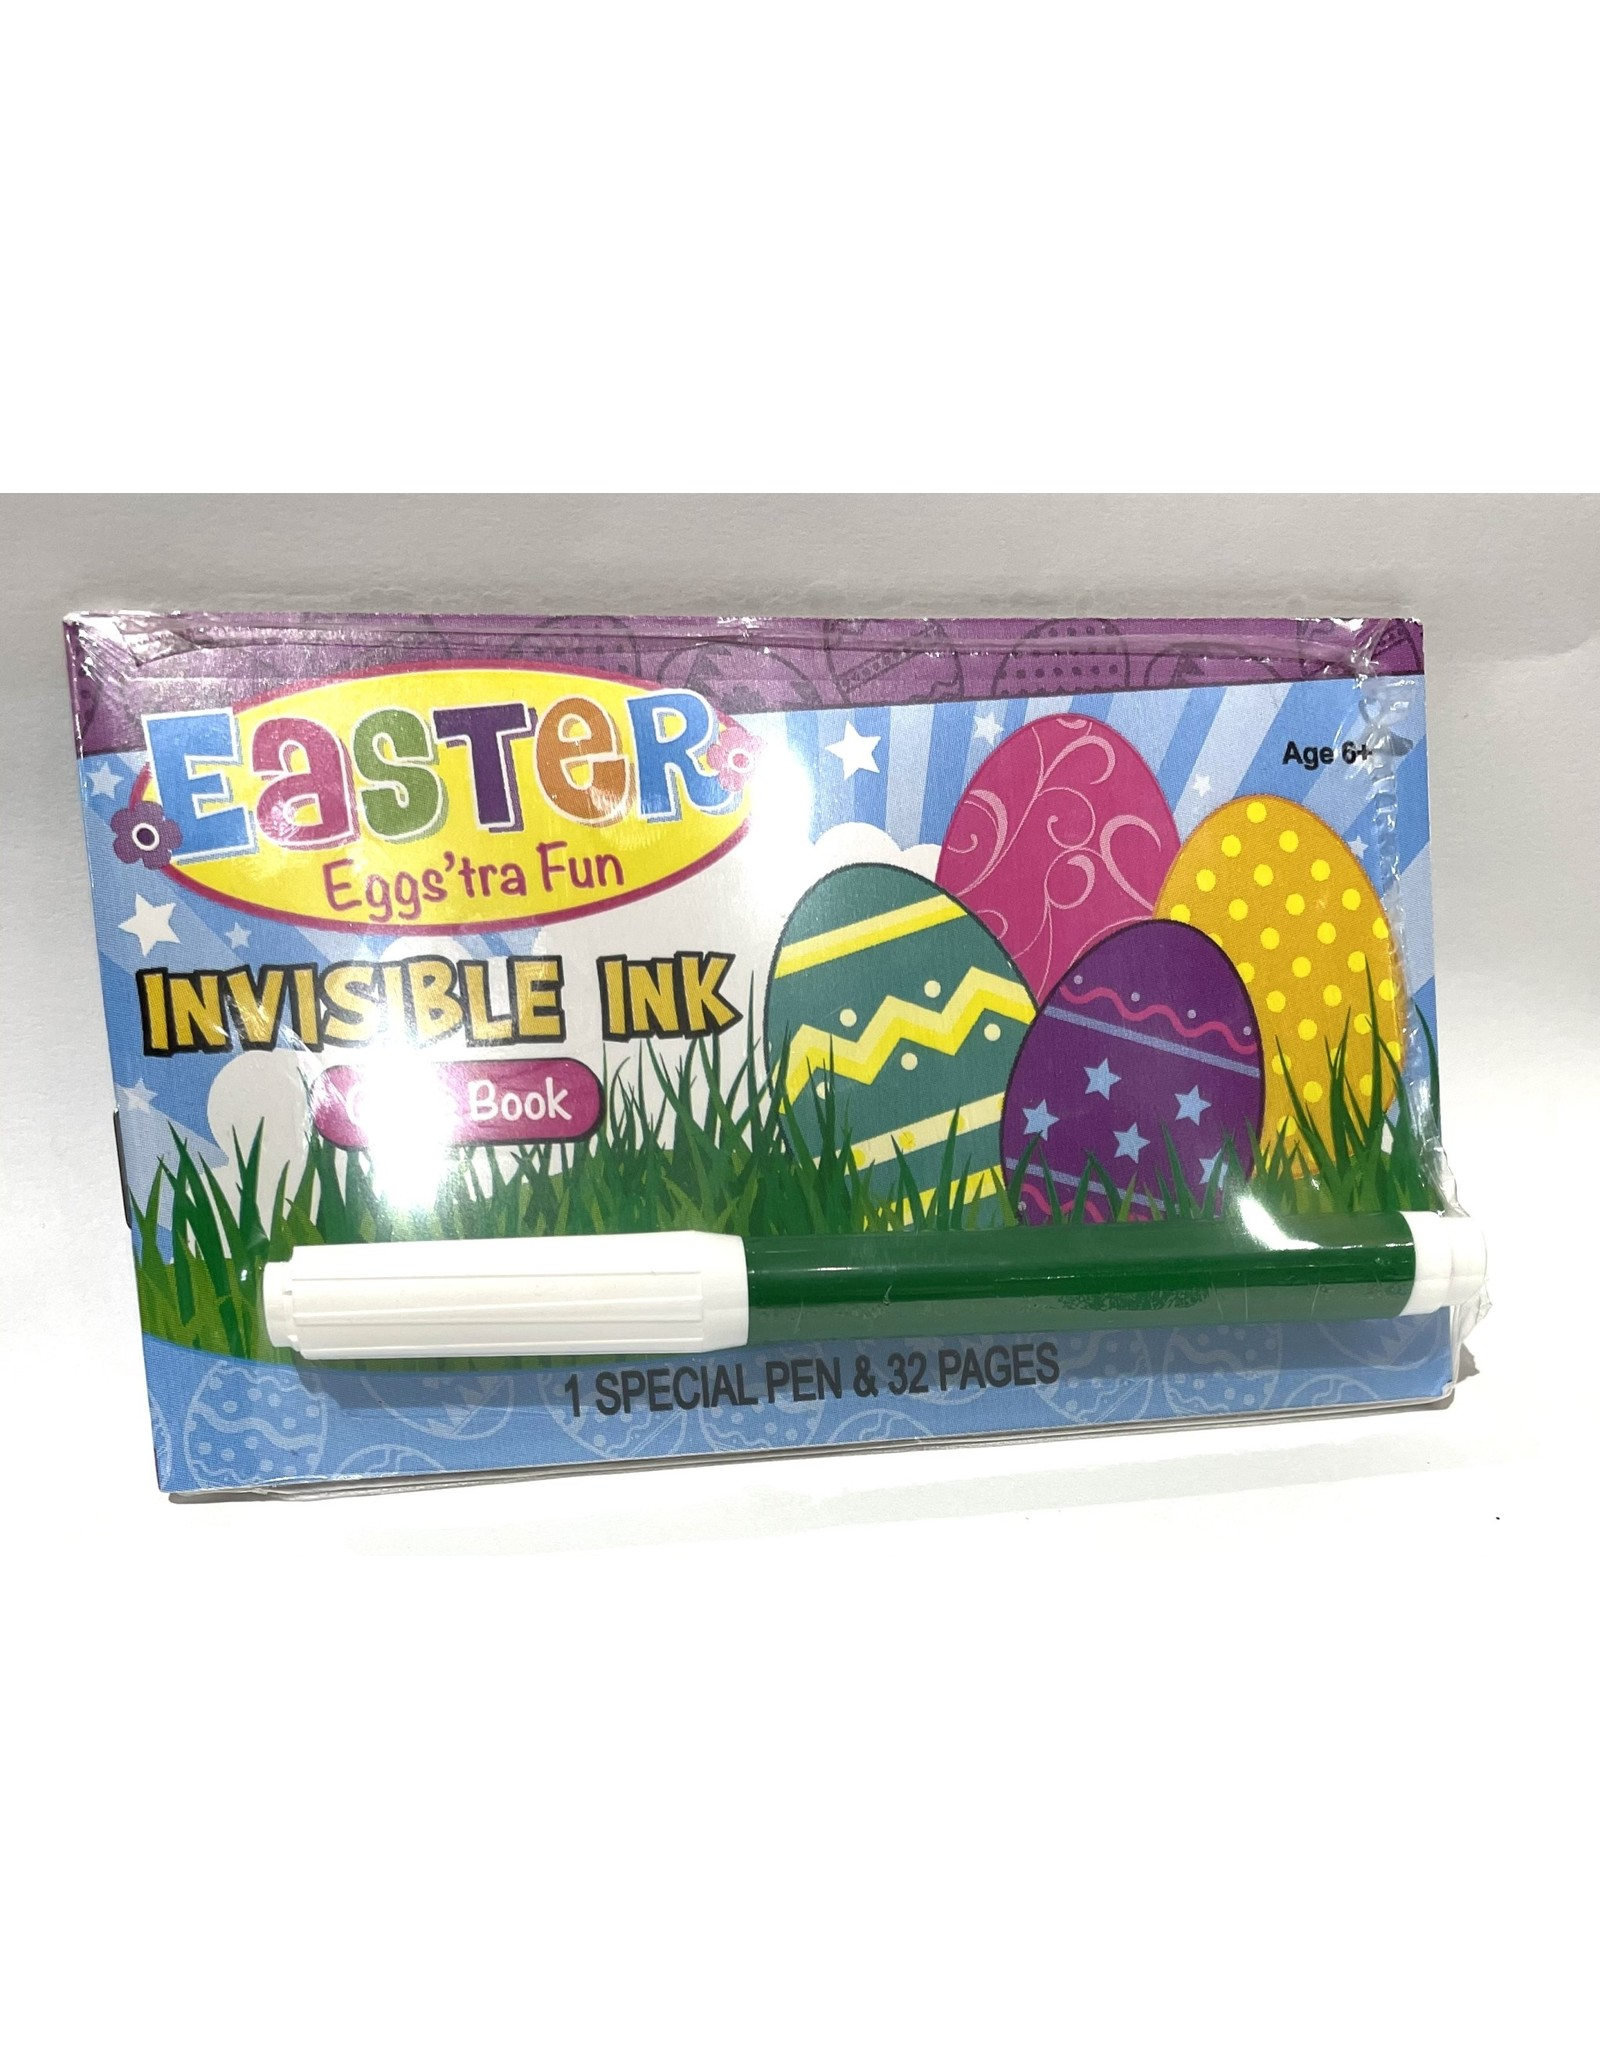 LEE Publications Eggs'tra Fun Invisible Ink Game Book